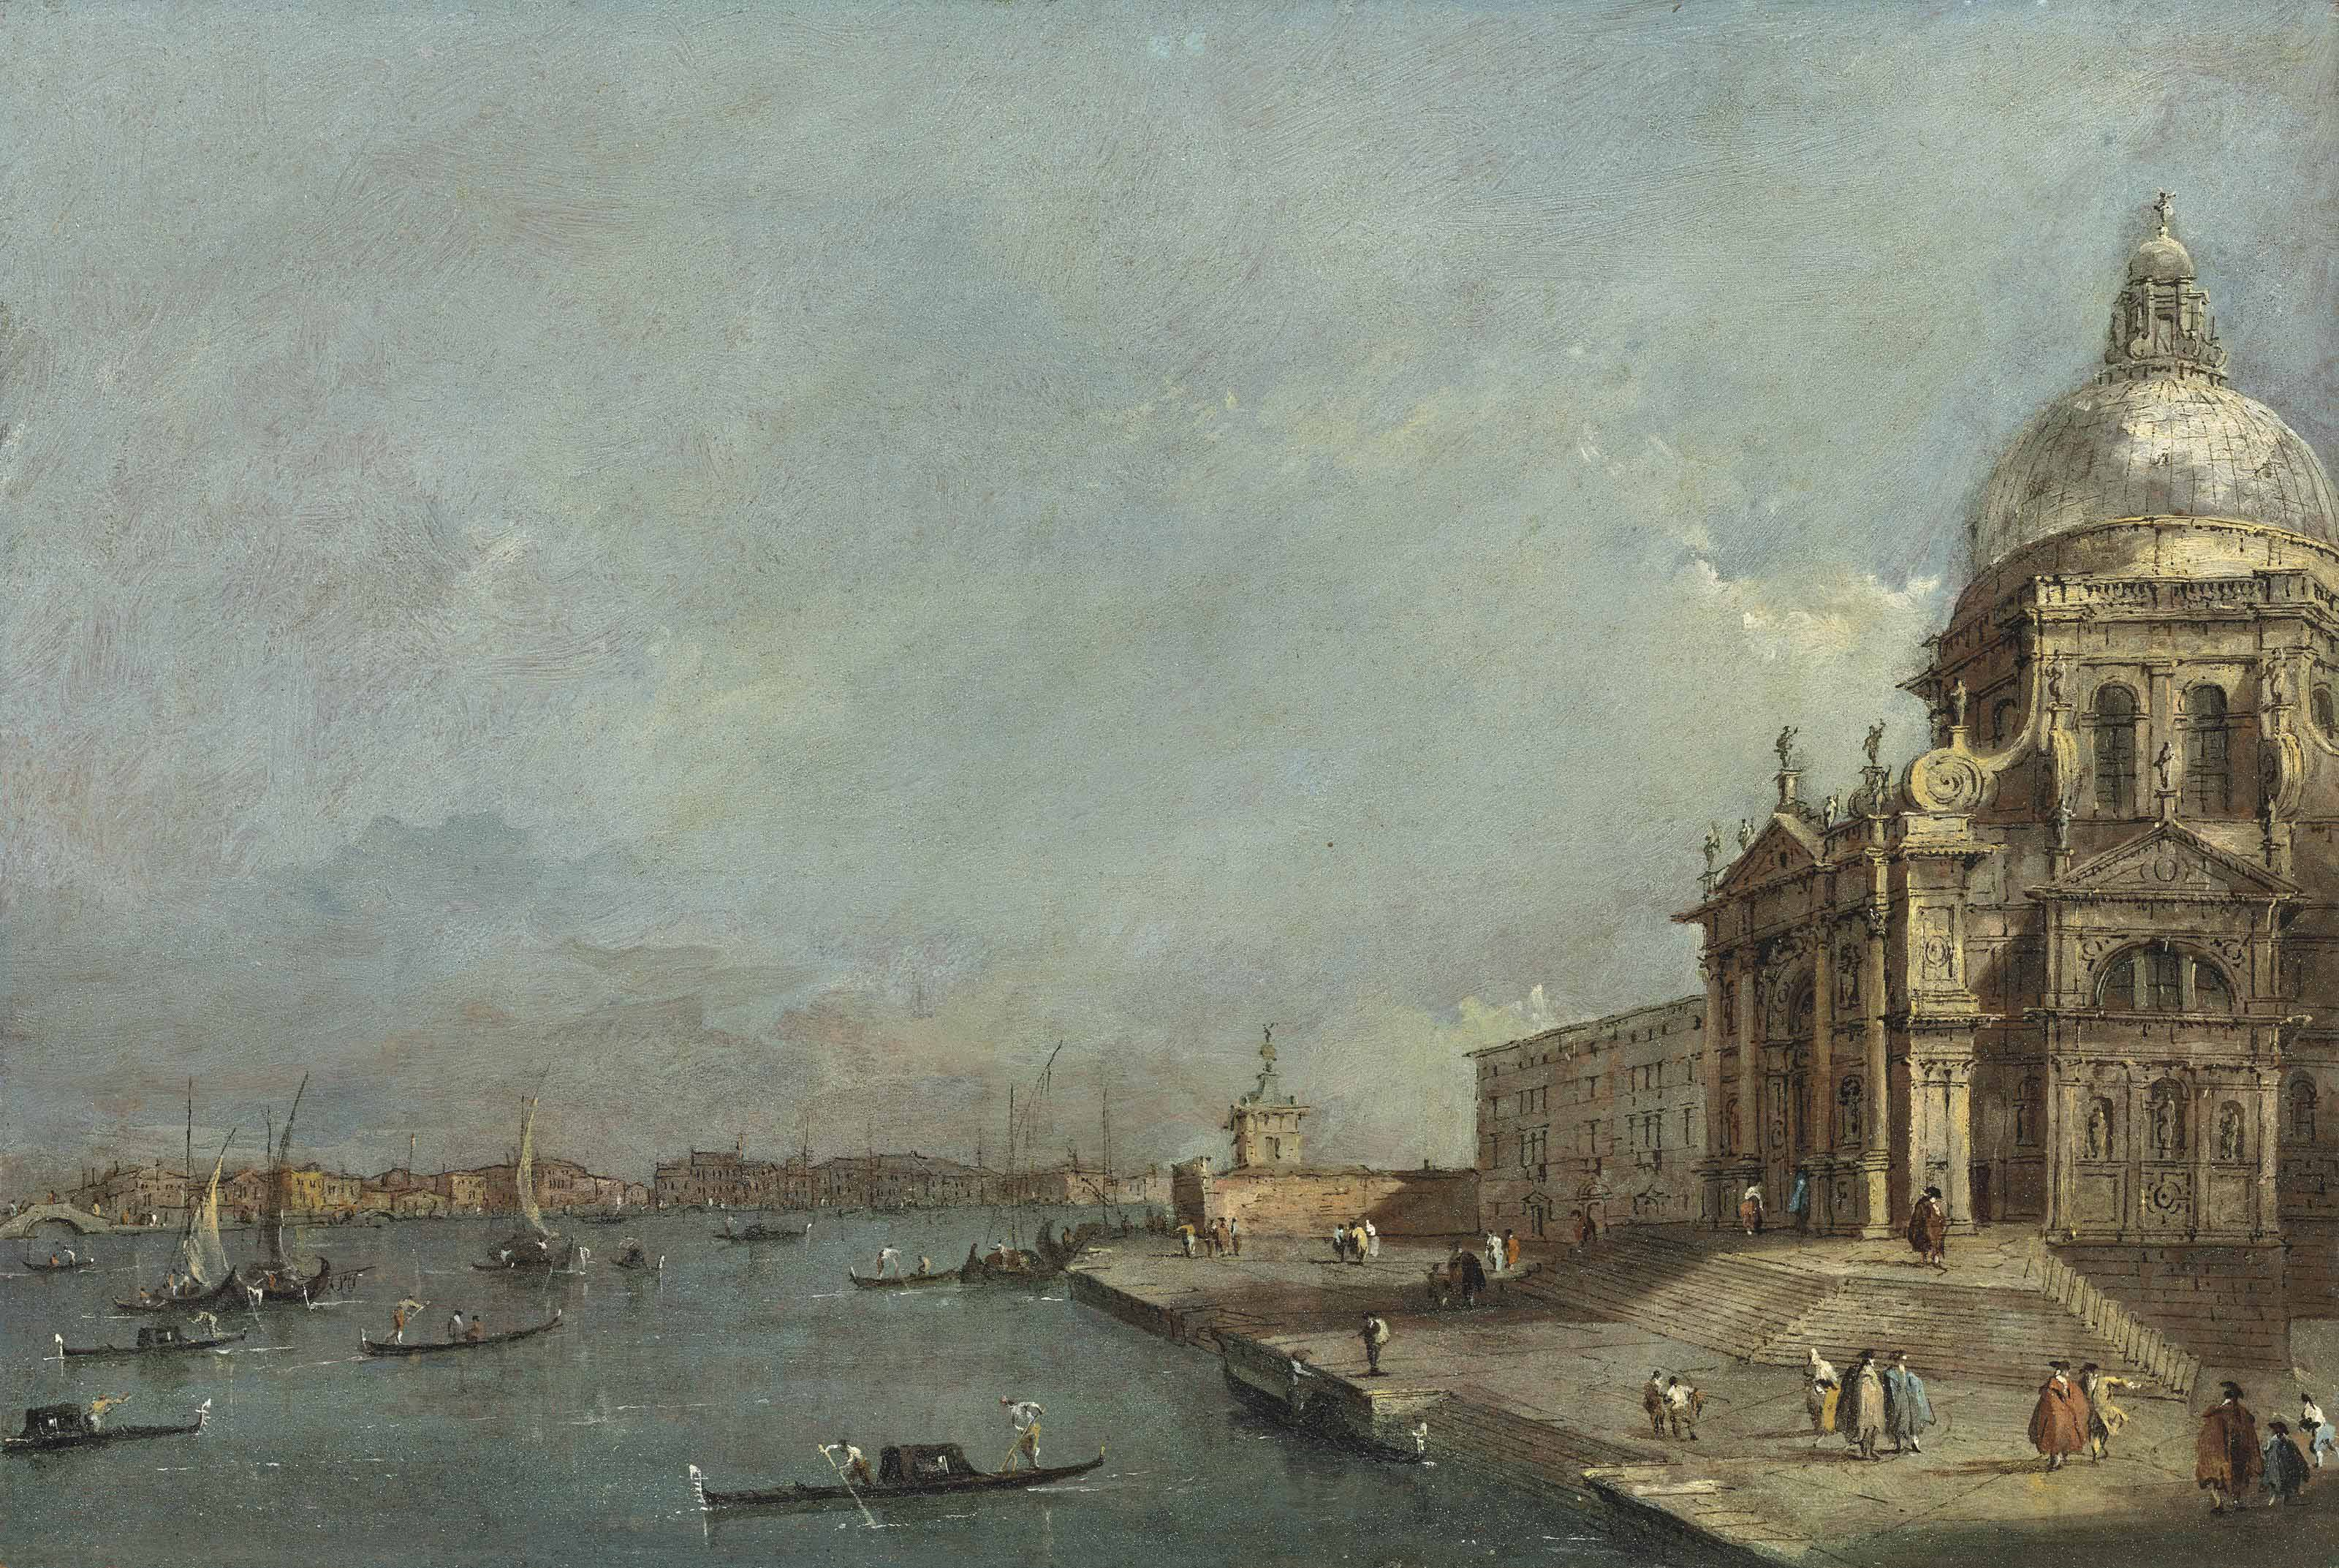 Santa Maria della Salute and the entrance to the Grand Canal, Venice, looking East